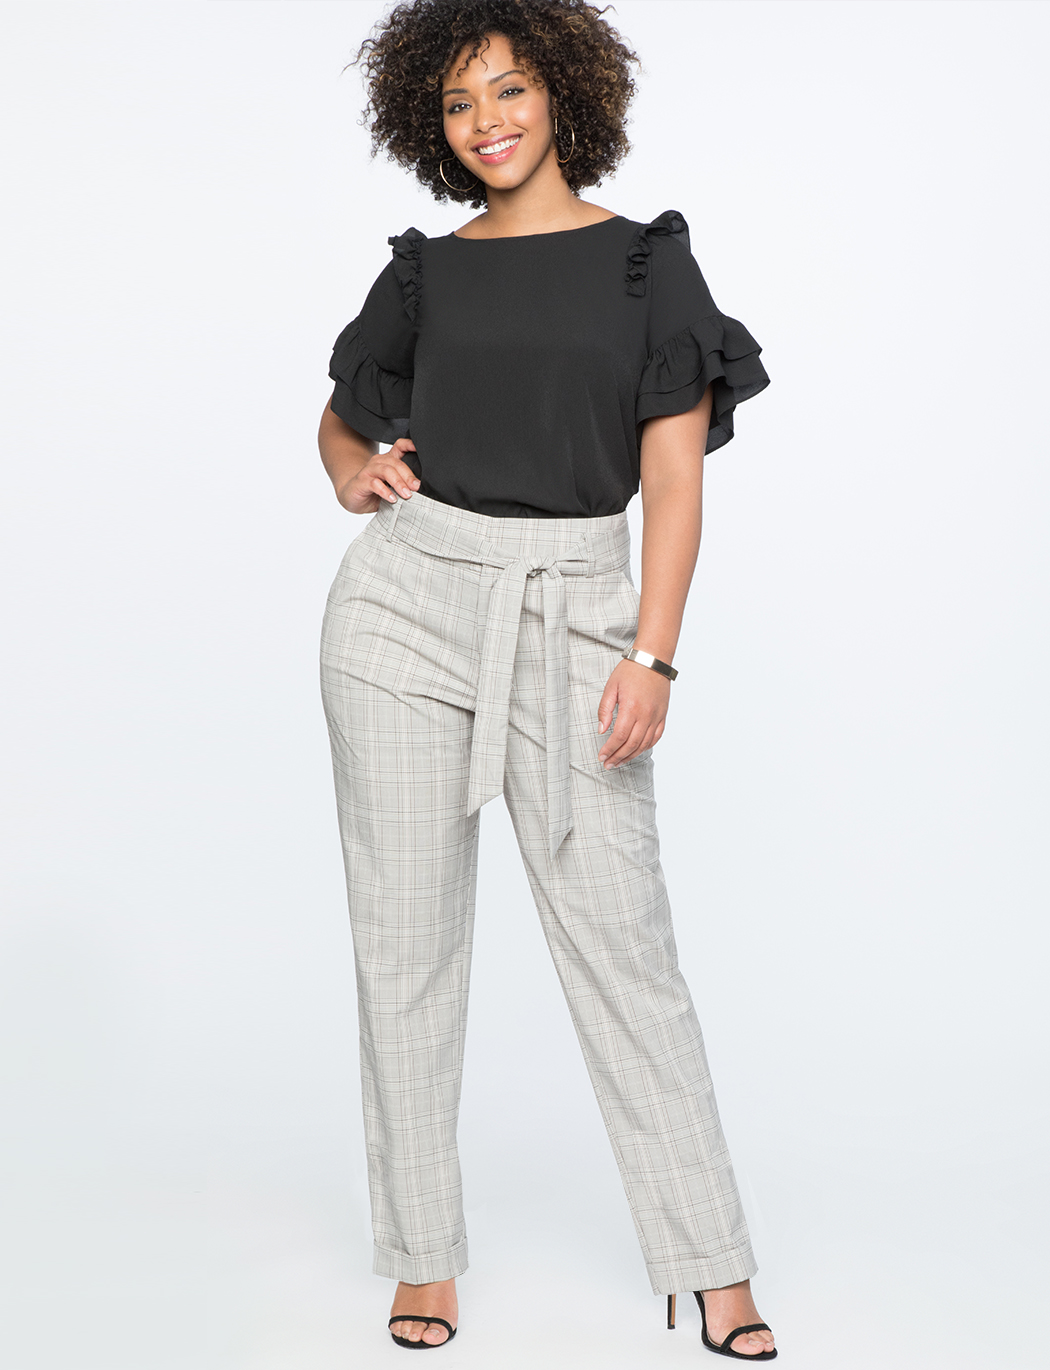 High Waisted Plaid Cuff Pant with Tie